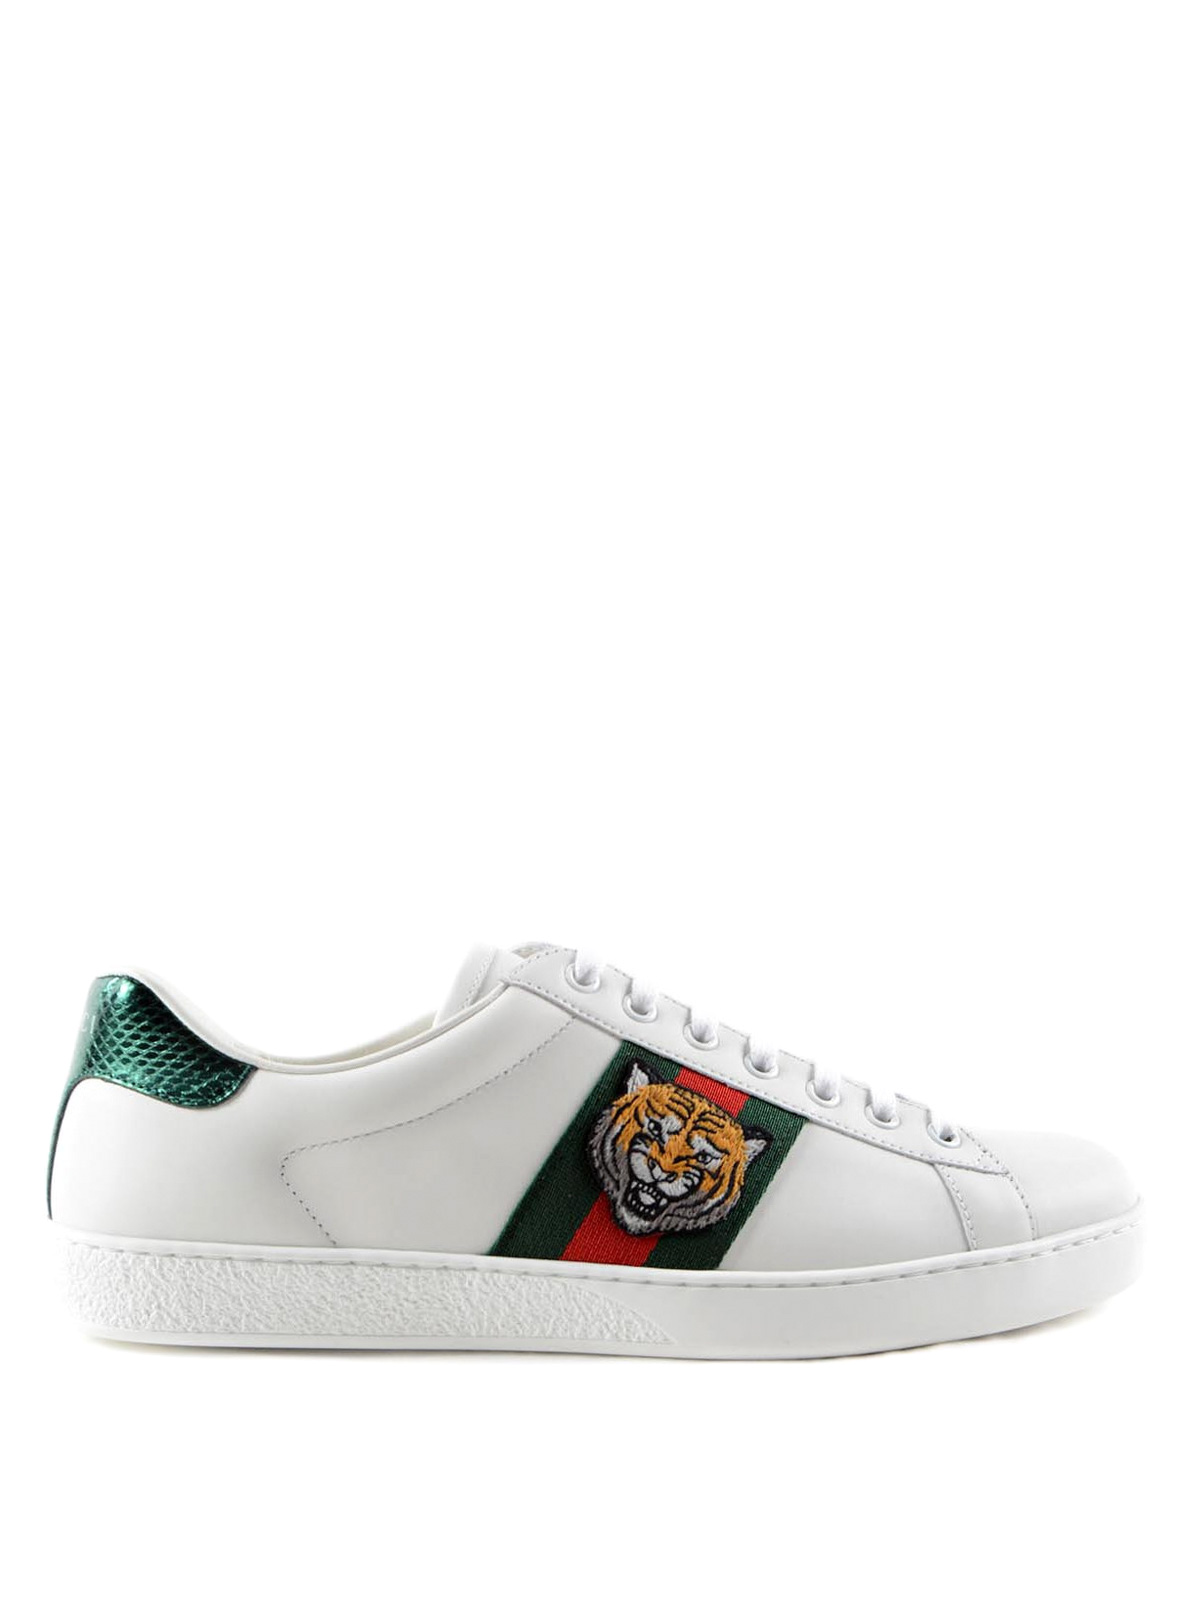 Gucci - Web and tiger patch sneakers - trainers - 457132 A38G0 9064 cbb331d50